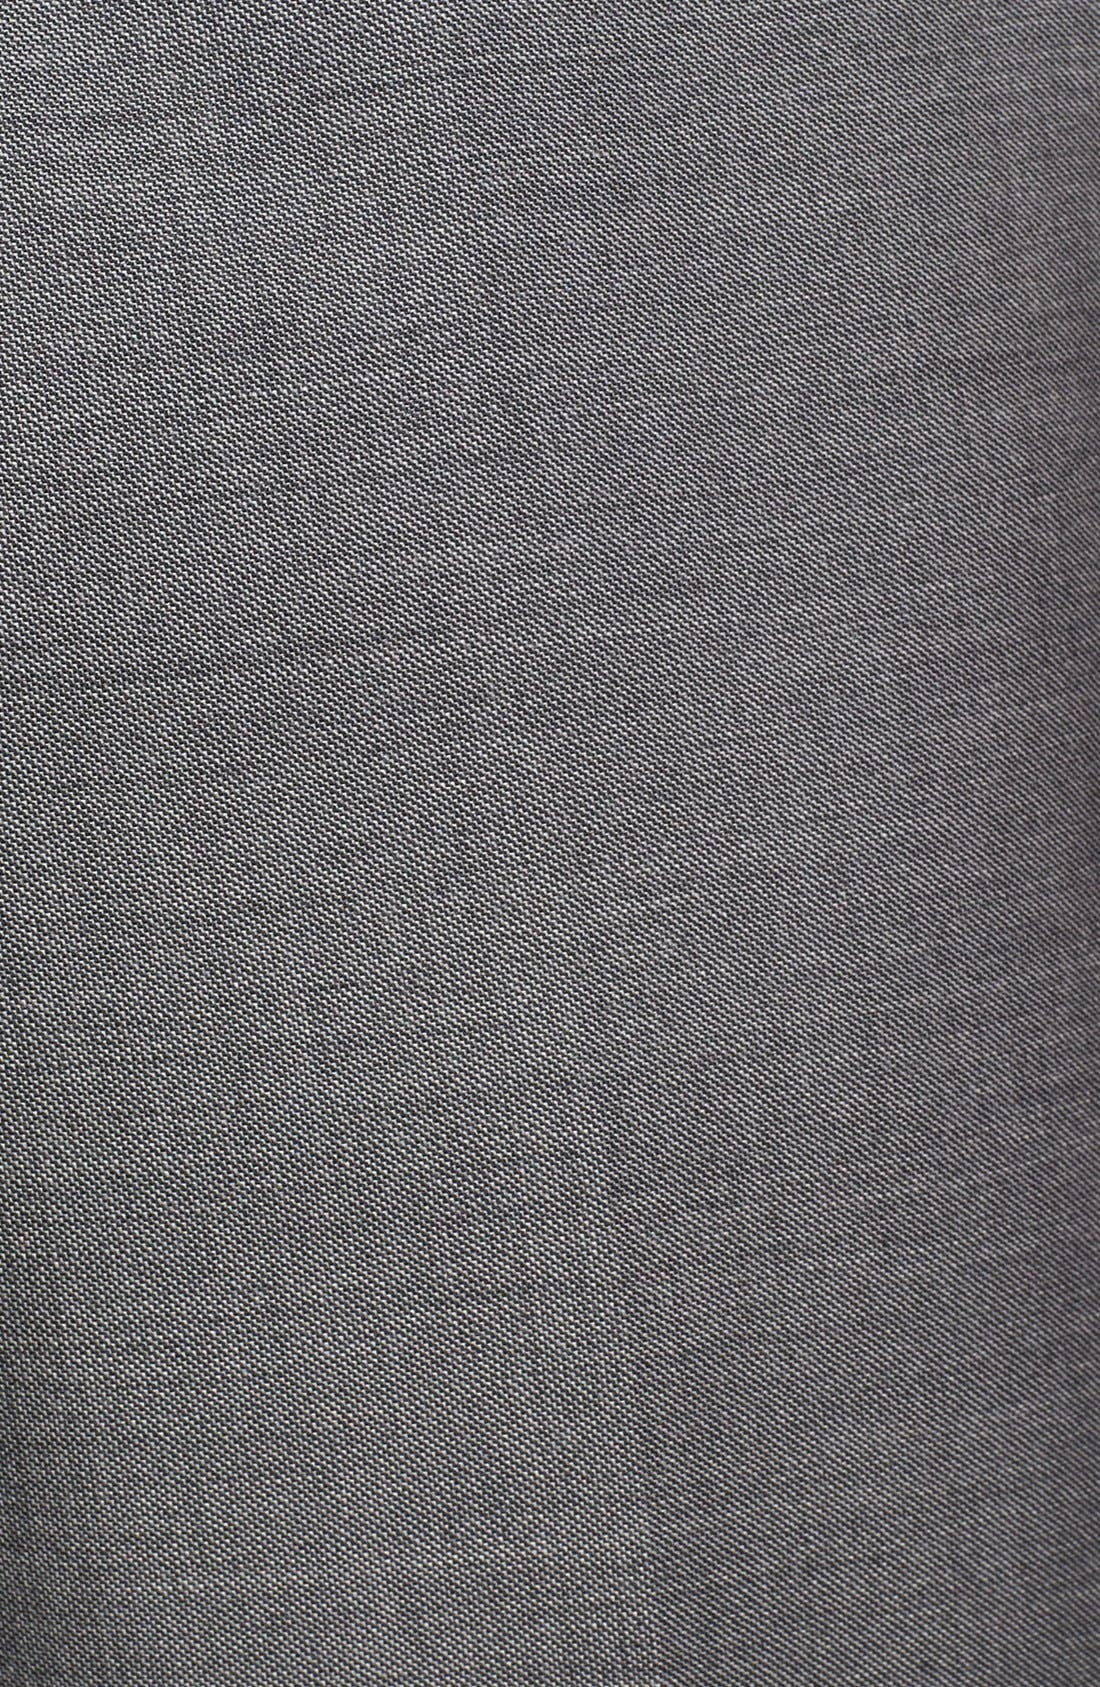 Alternate Image 3  - BOSS HUGO BOSS 'Sharp' Flat Front Wool Trousers